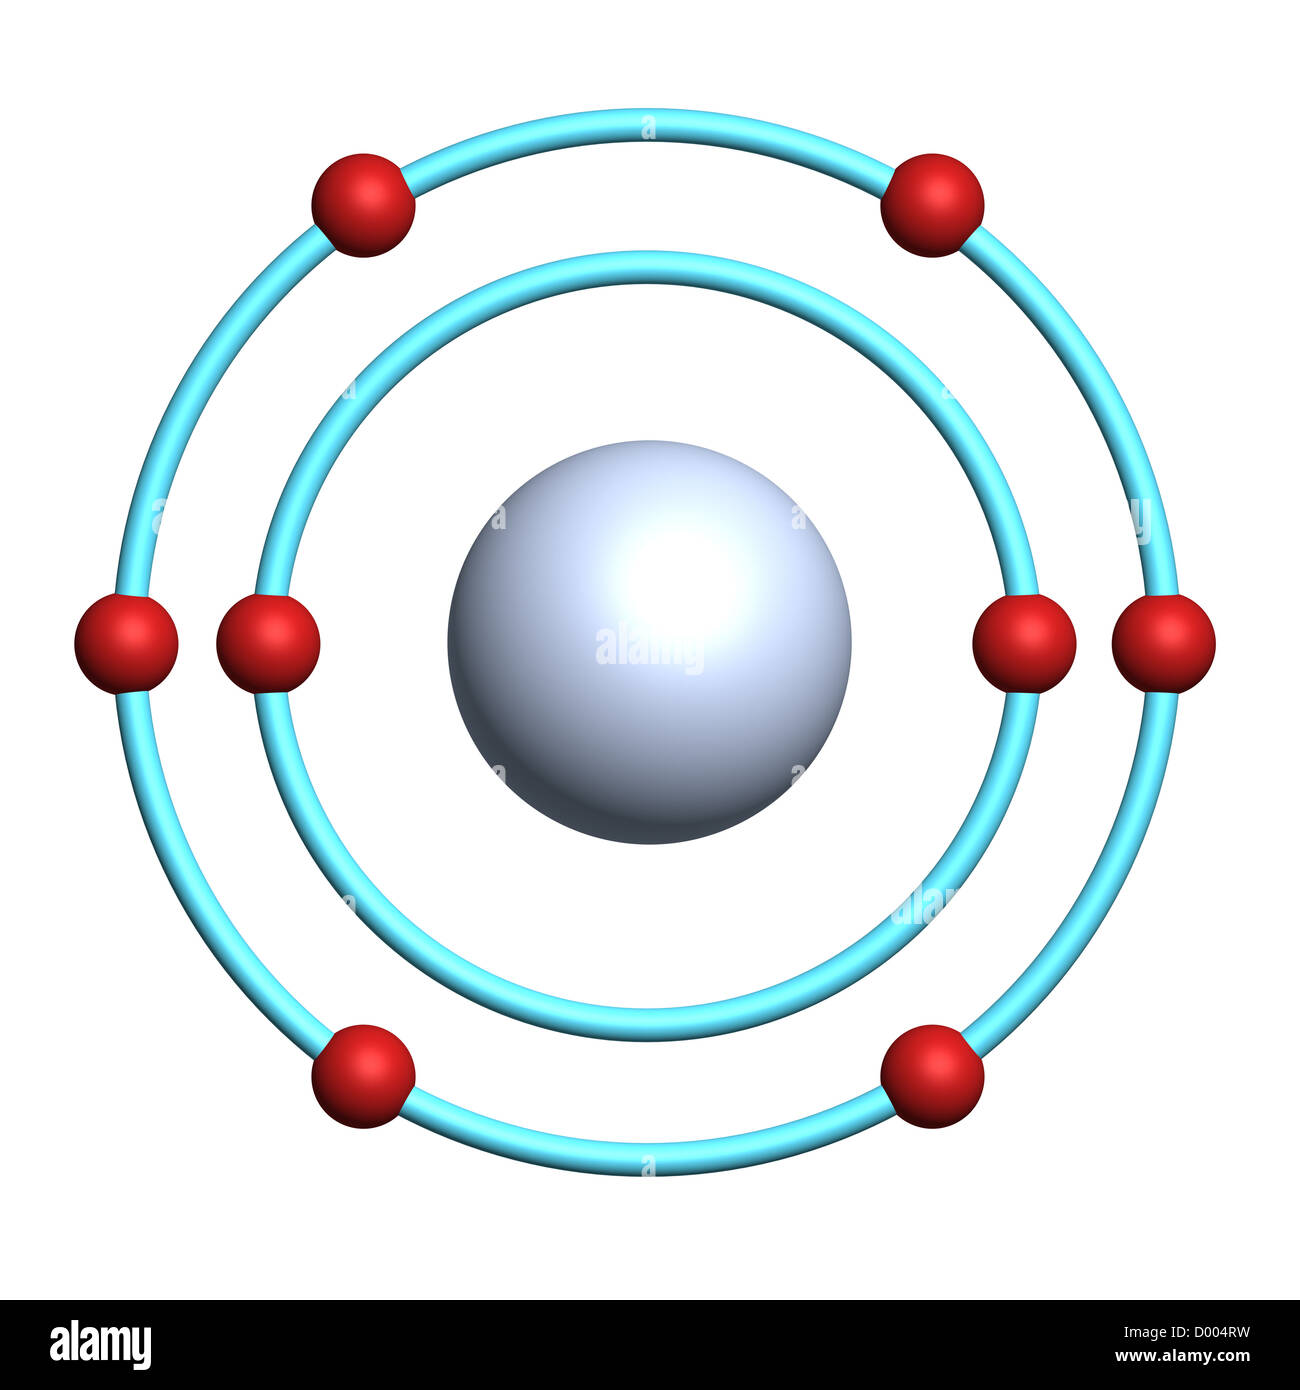 Oxygen Atom Model Styrofoam Structure Diagram Stock Photo List Of Synonyms And Antonyms The Word 1300x1390